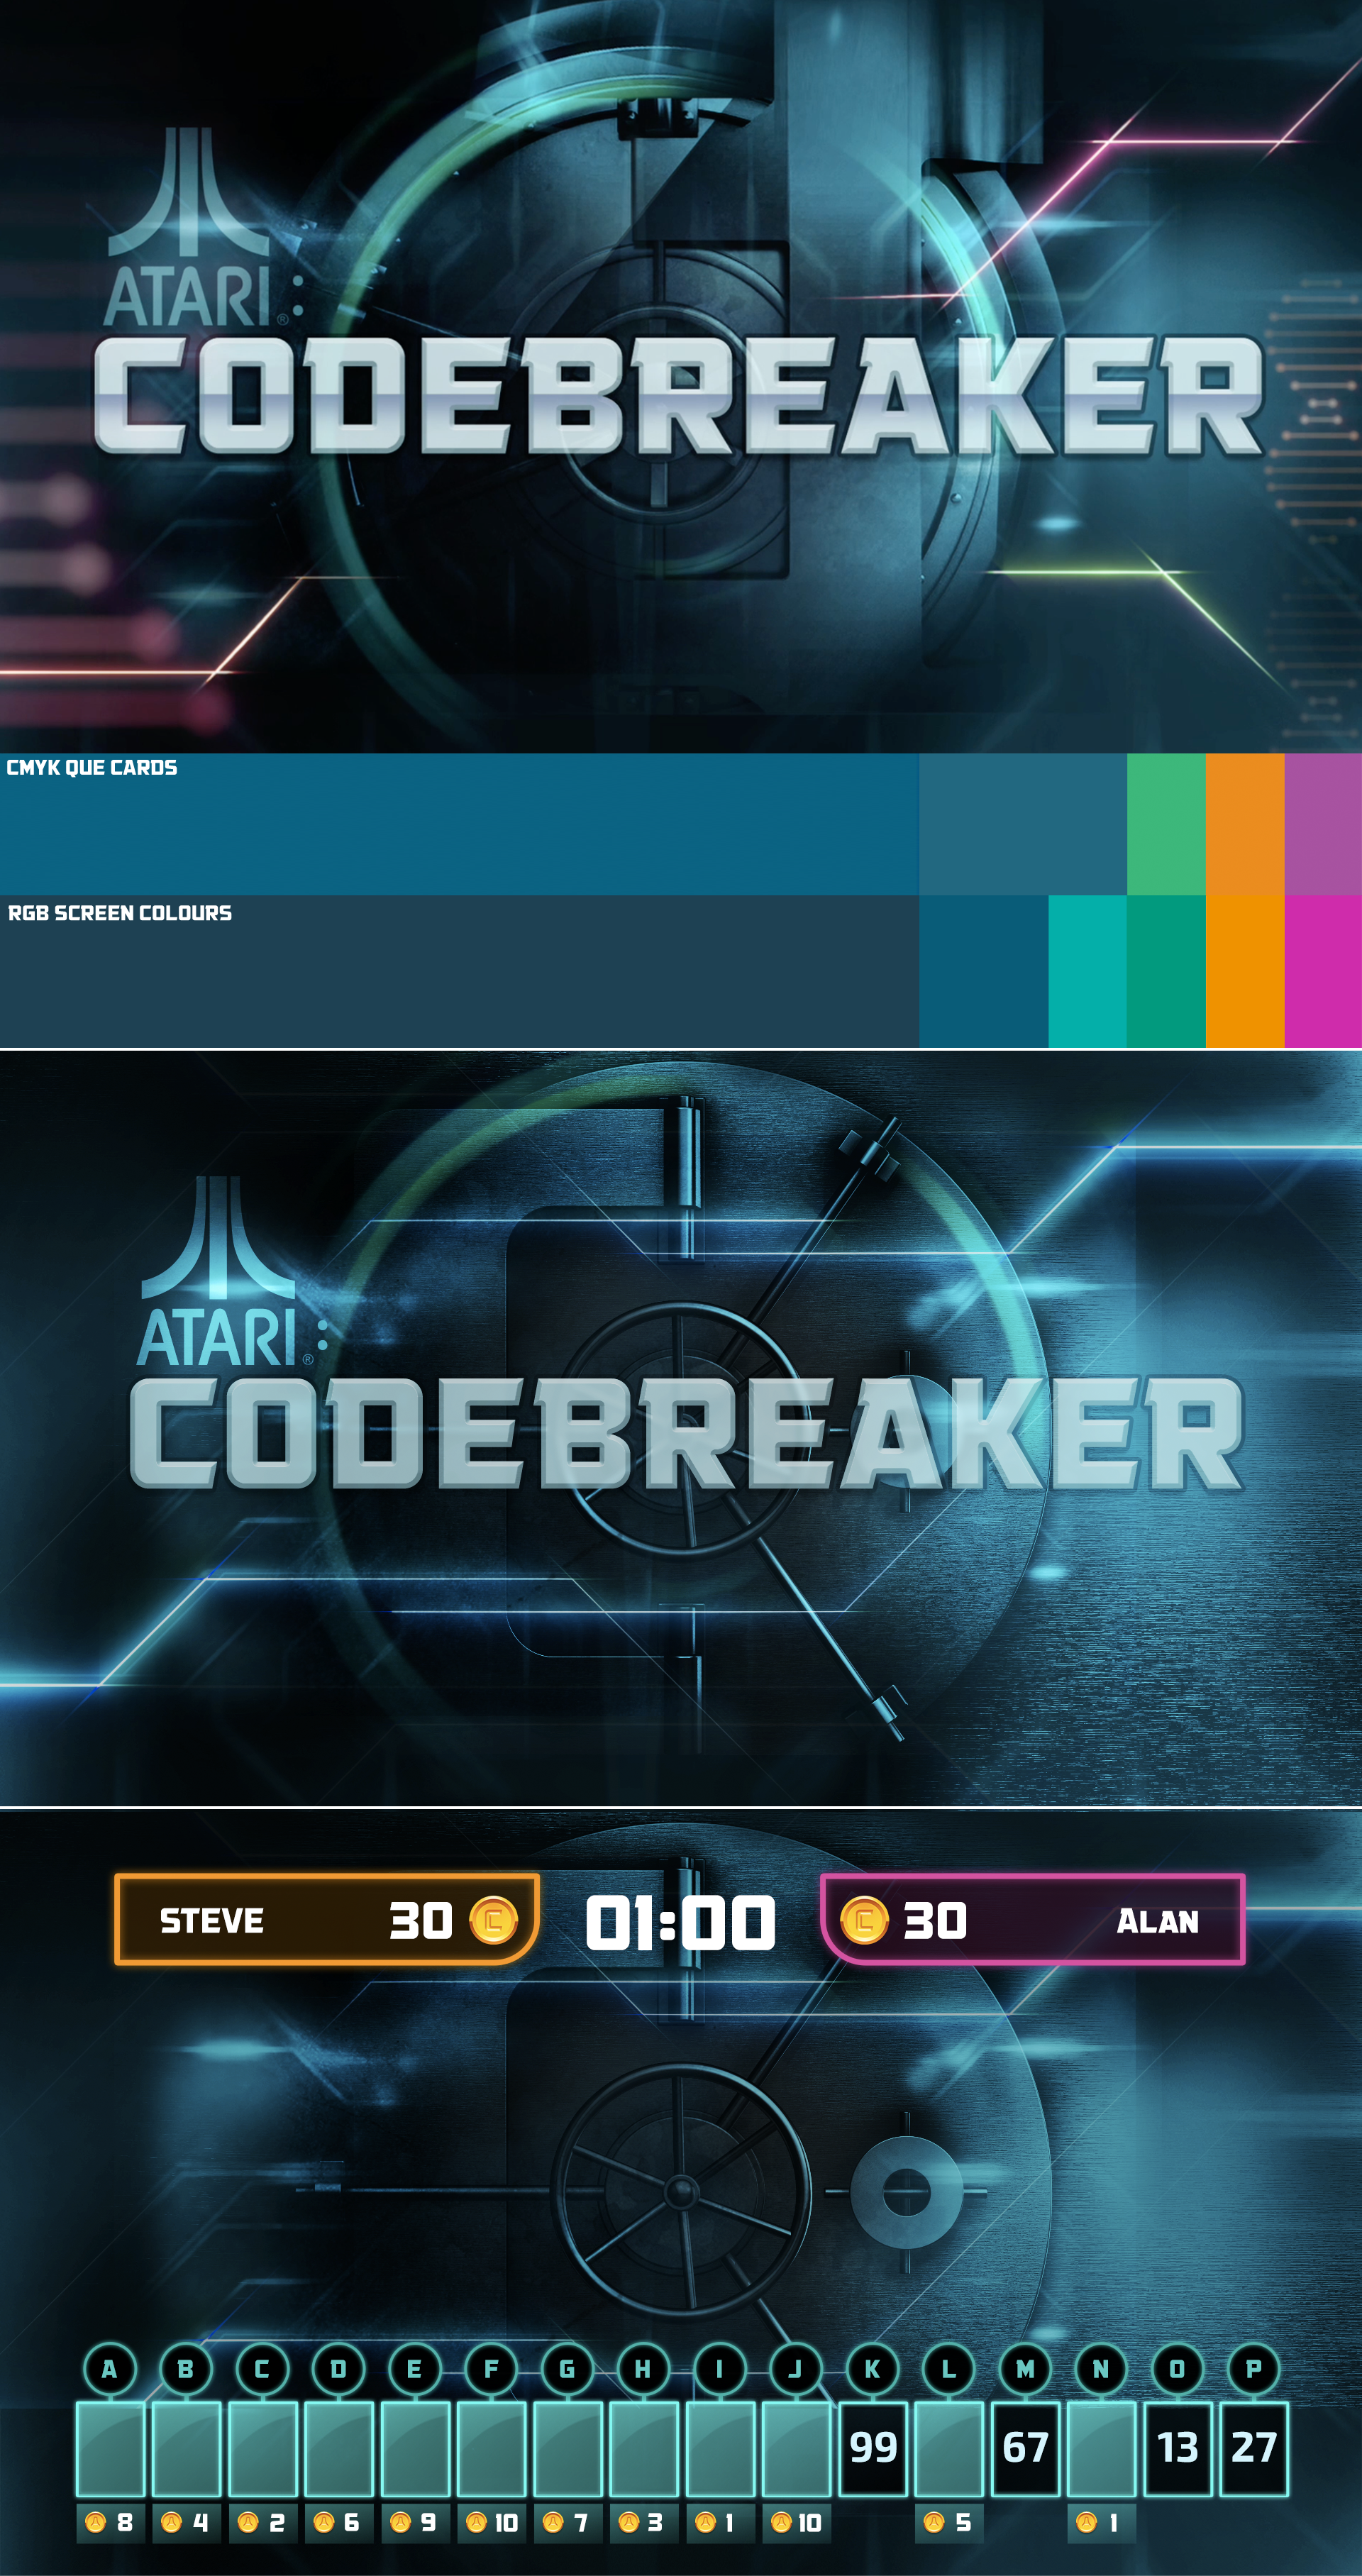 atari_codebreaker_look_HUD_development_2017